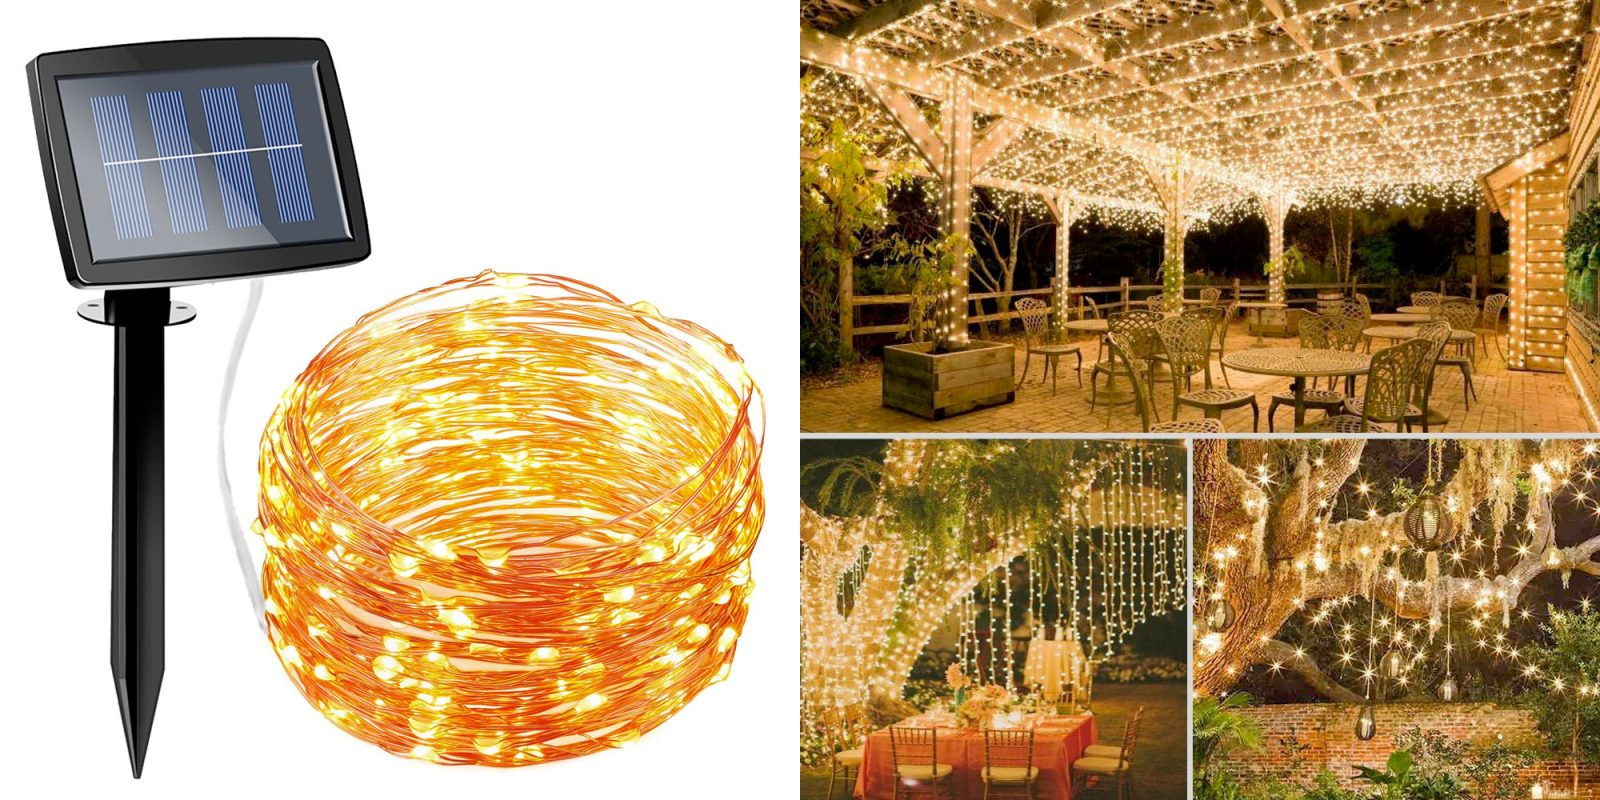 This $8 Prime shipped solar string light kit is a must for any